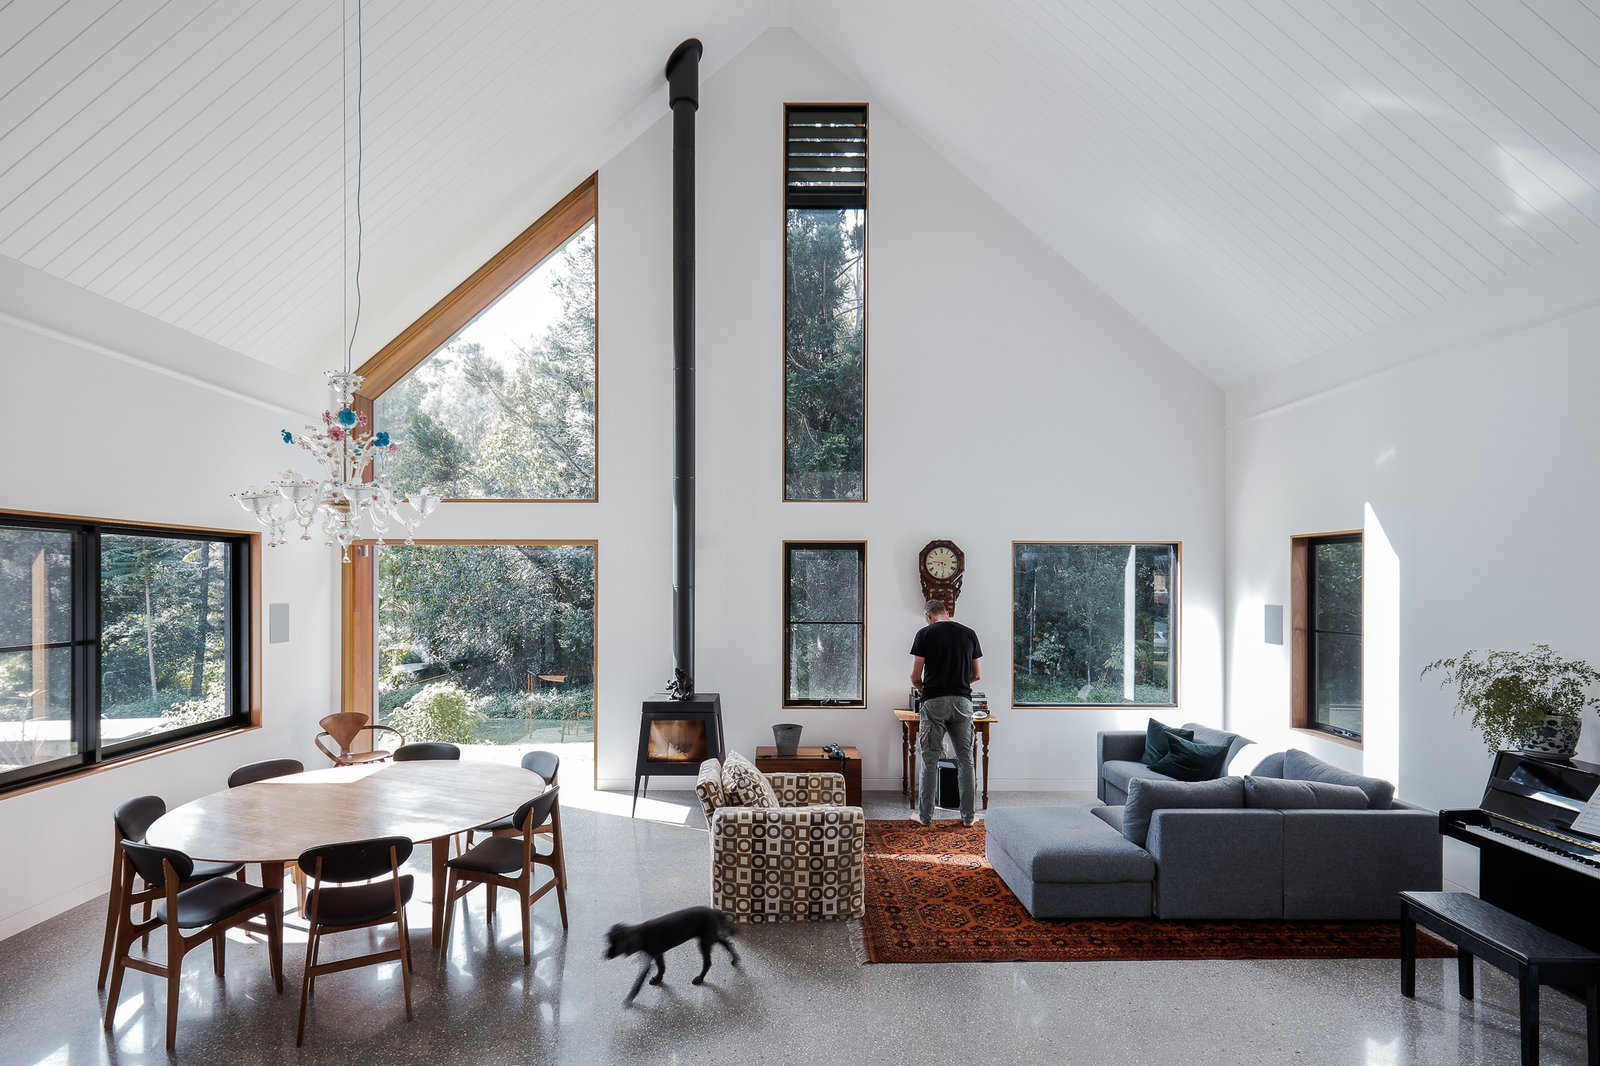 Living, Concrete, Pendant, Wood Burning, Chair, Table, Ottomans, Sectional, and Rug The dining table and chairs were designed by Tim Sharpe.  Best Living Pendant Ottomans Wood Burning Photos from Two Barn-Like Volumes Make Up This Low-Maintenance Australian Home